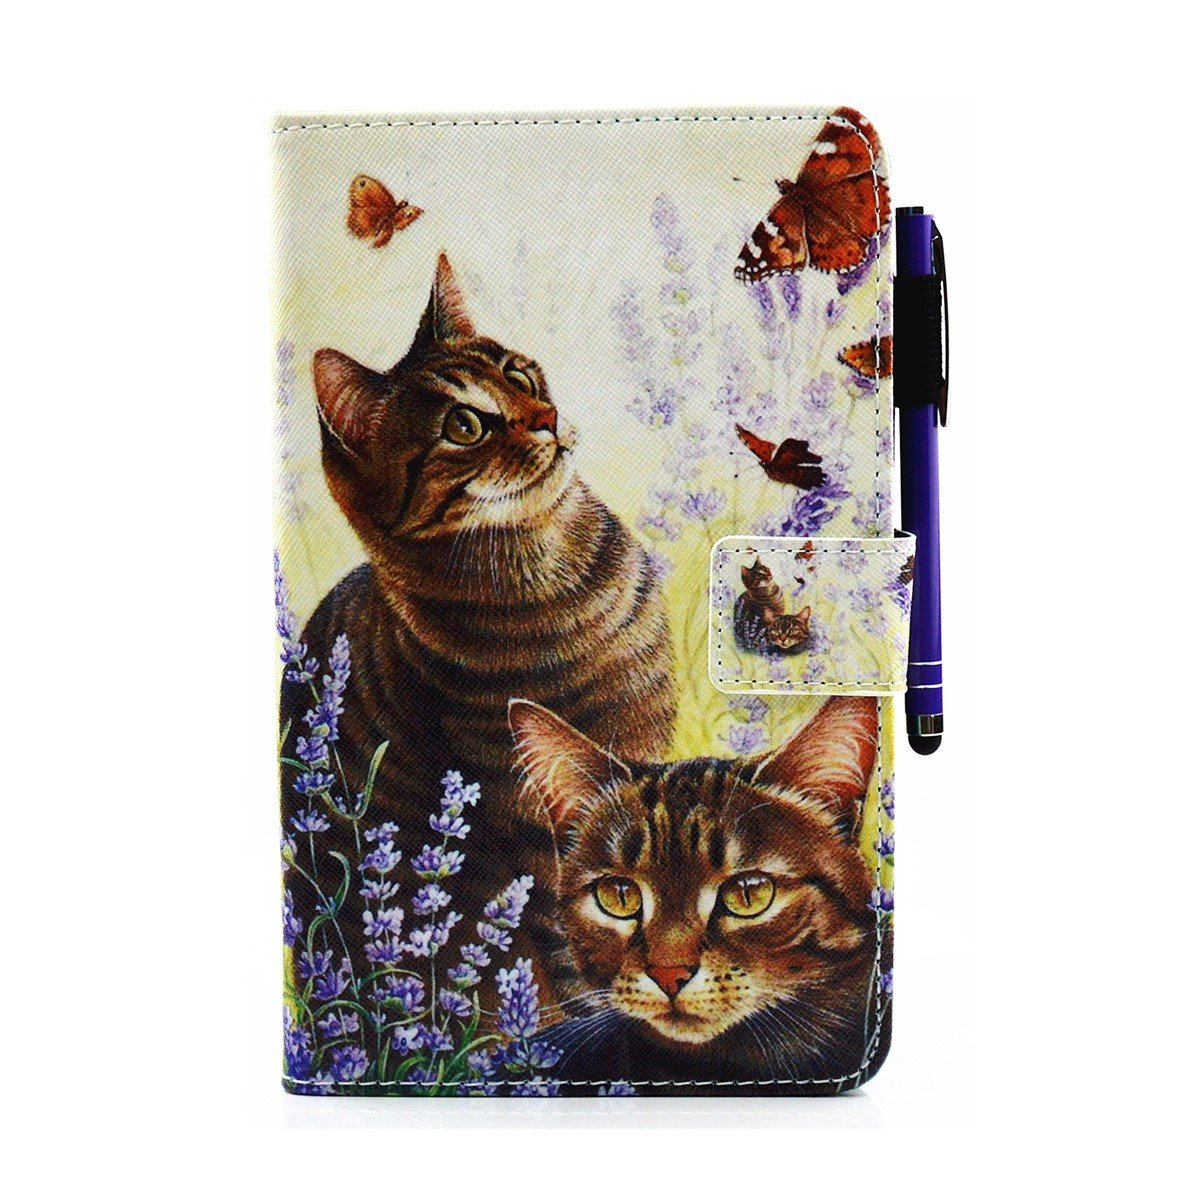 inShang T230 Case for Samsung Galaxy TAB 4 7.0 Inch T 230, With Color Painting Pattern, Stand Cover + 1pc stylus Pen